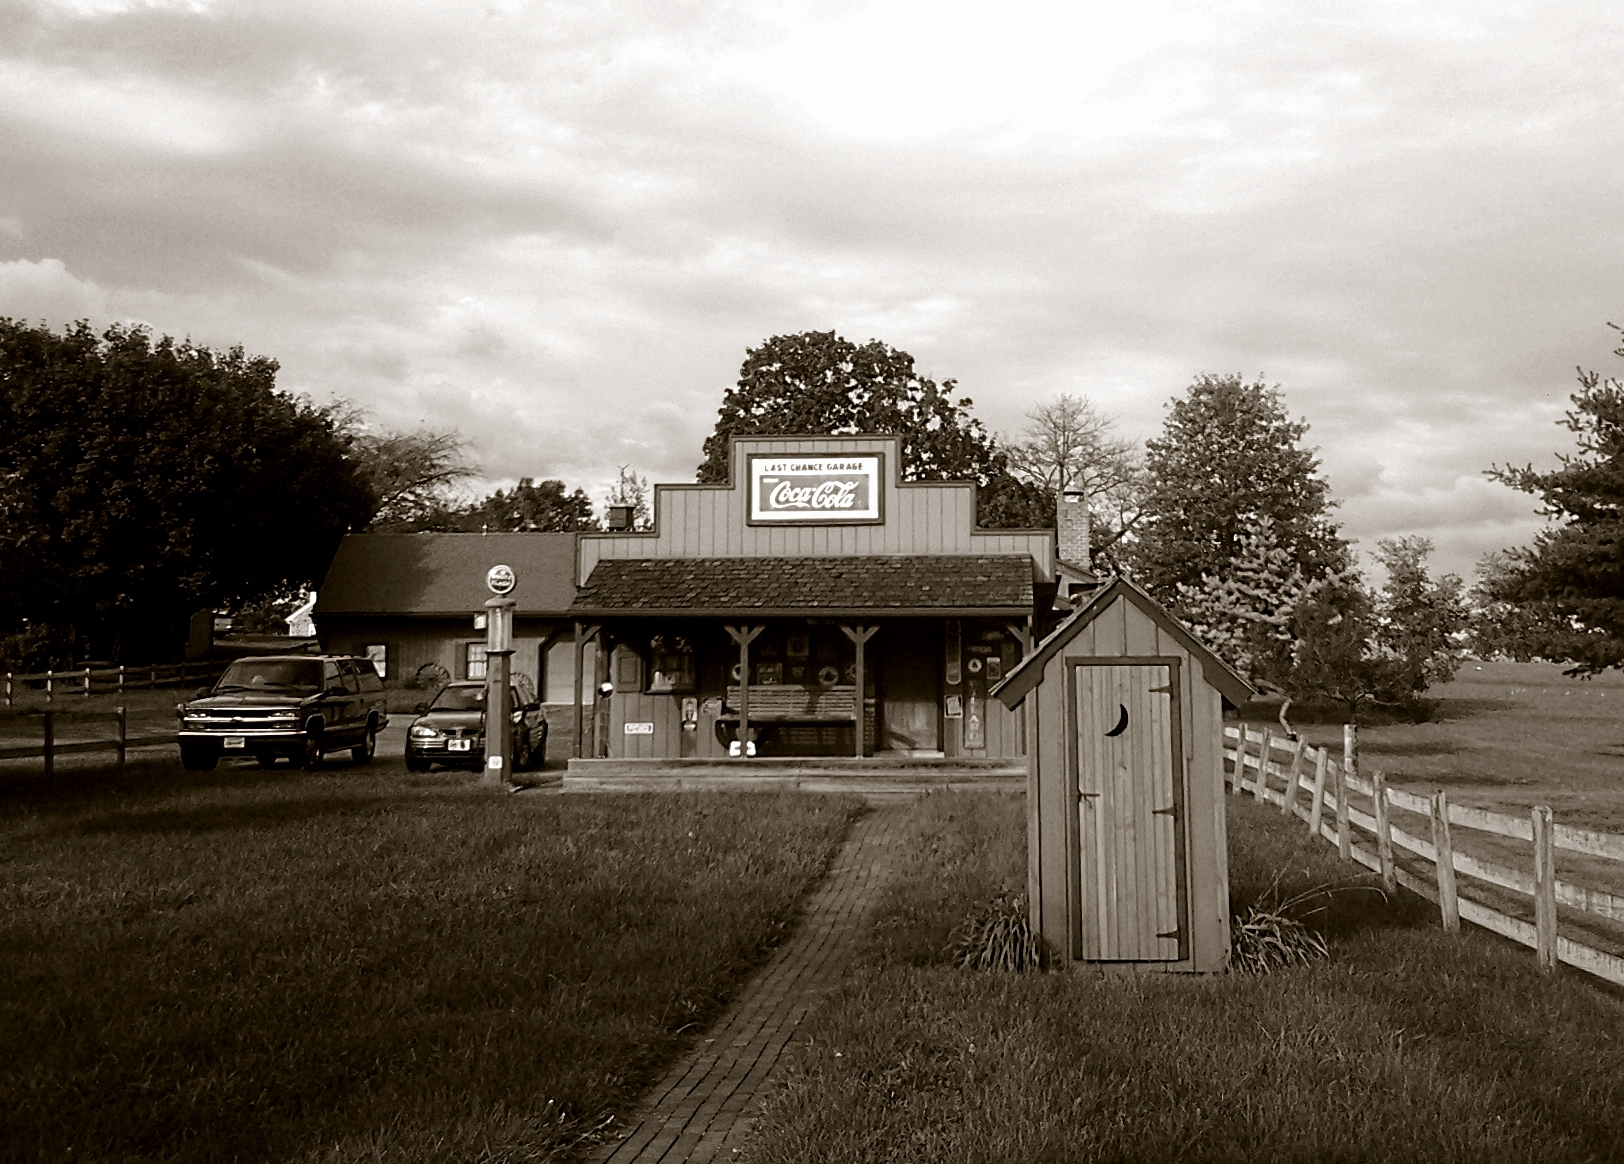 The Country Shop